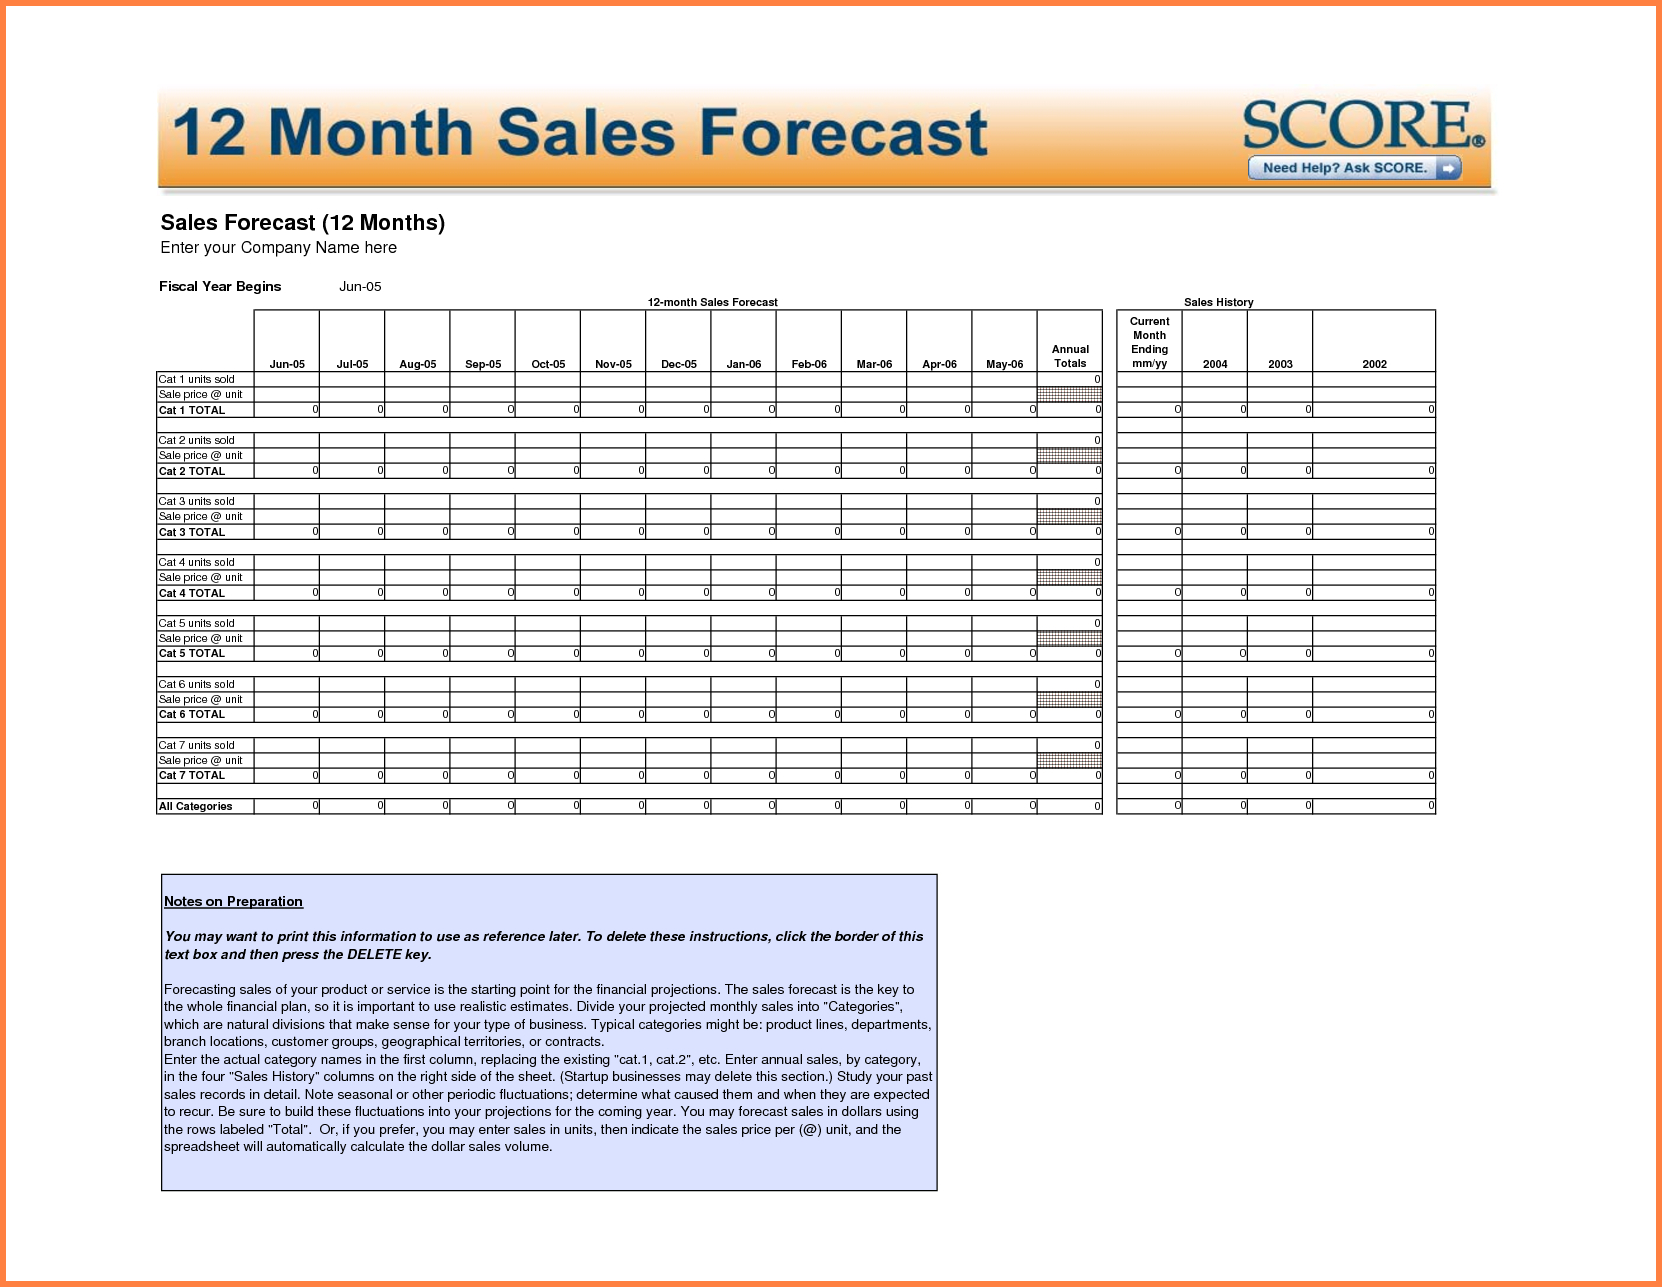 Quarterly Sales Forecast Template Excel | Homebiz4U2Profit Throughout Quarterly Sales Forecast Template Excel